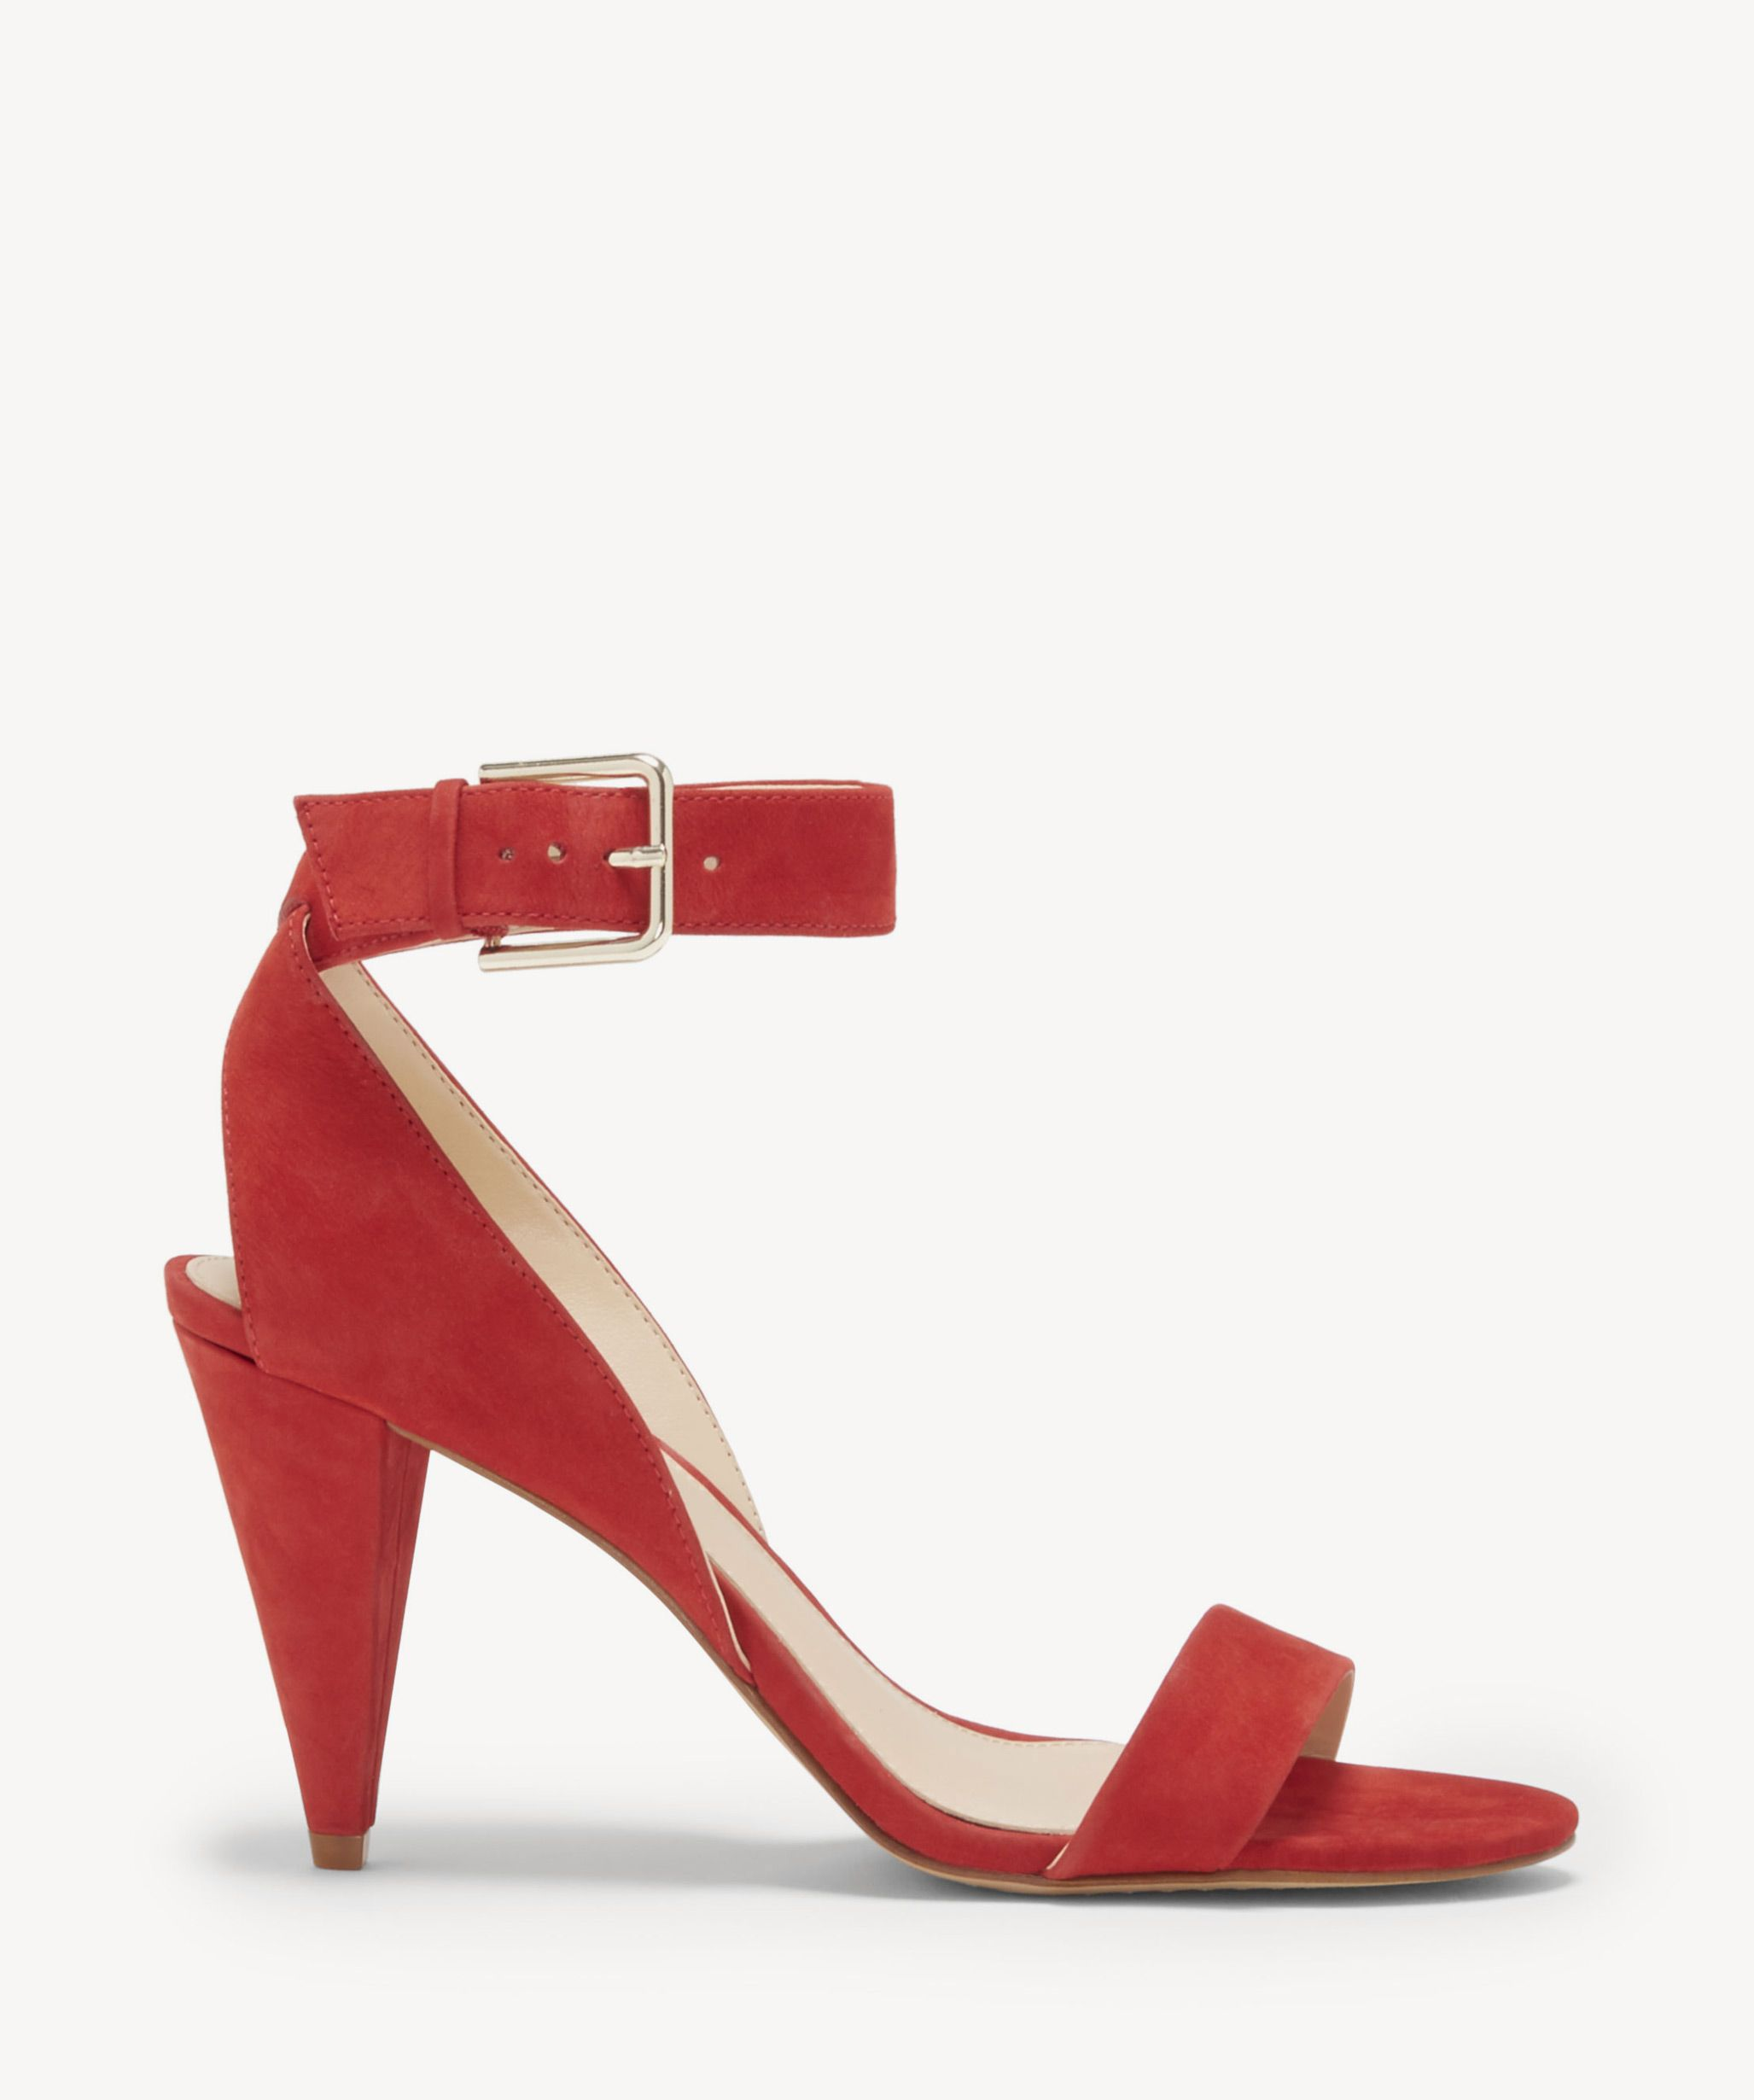 4040eda1710 Vince Camuto Women s Caitriona Ankle Strap Sandals In Color  Cherry Red